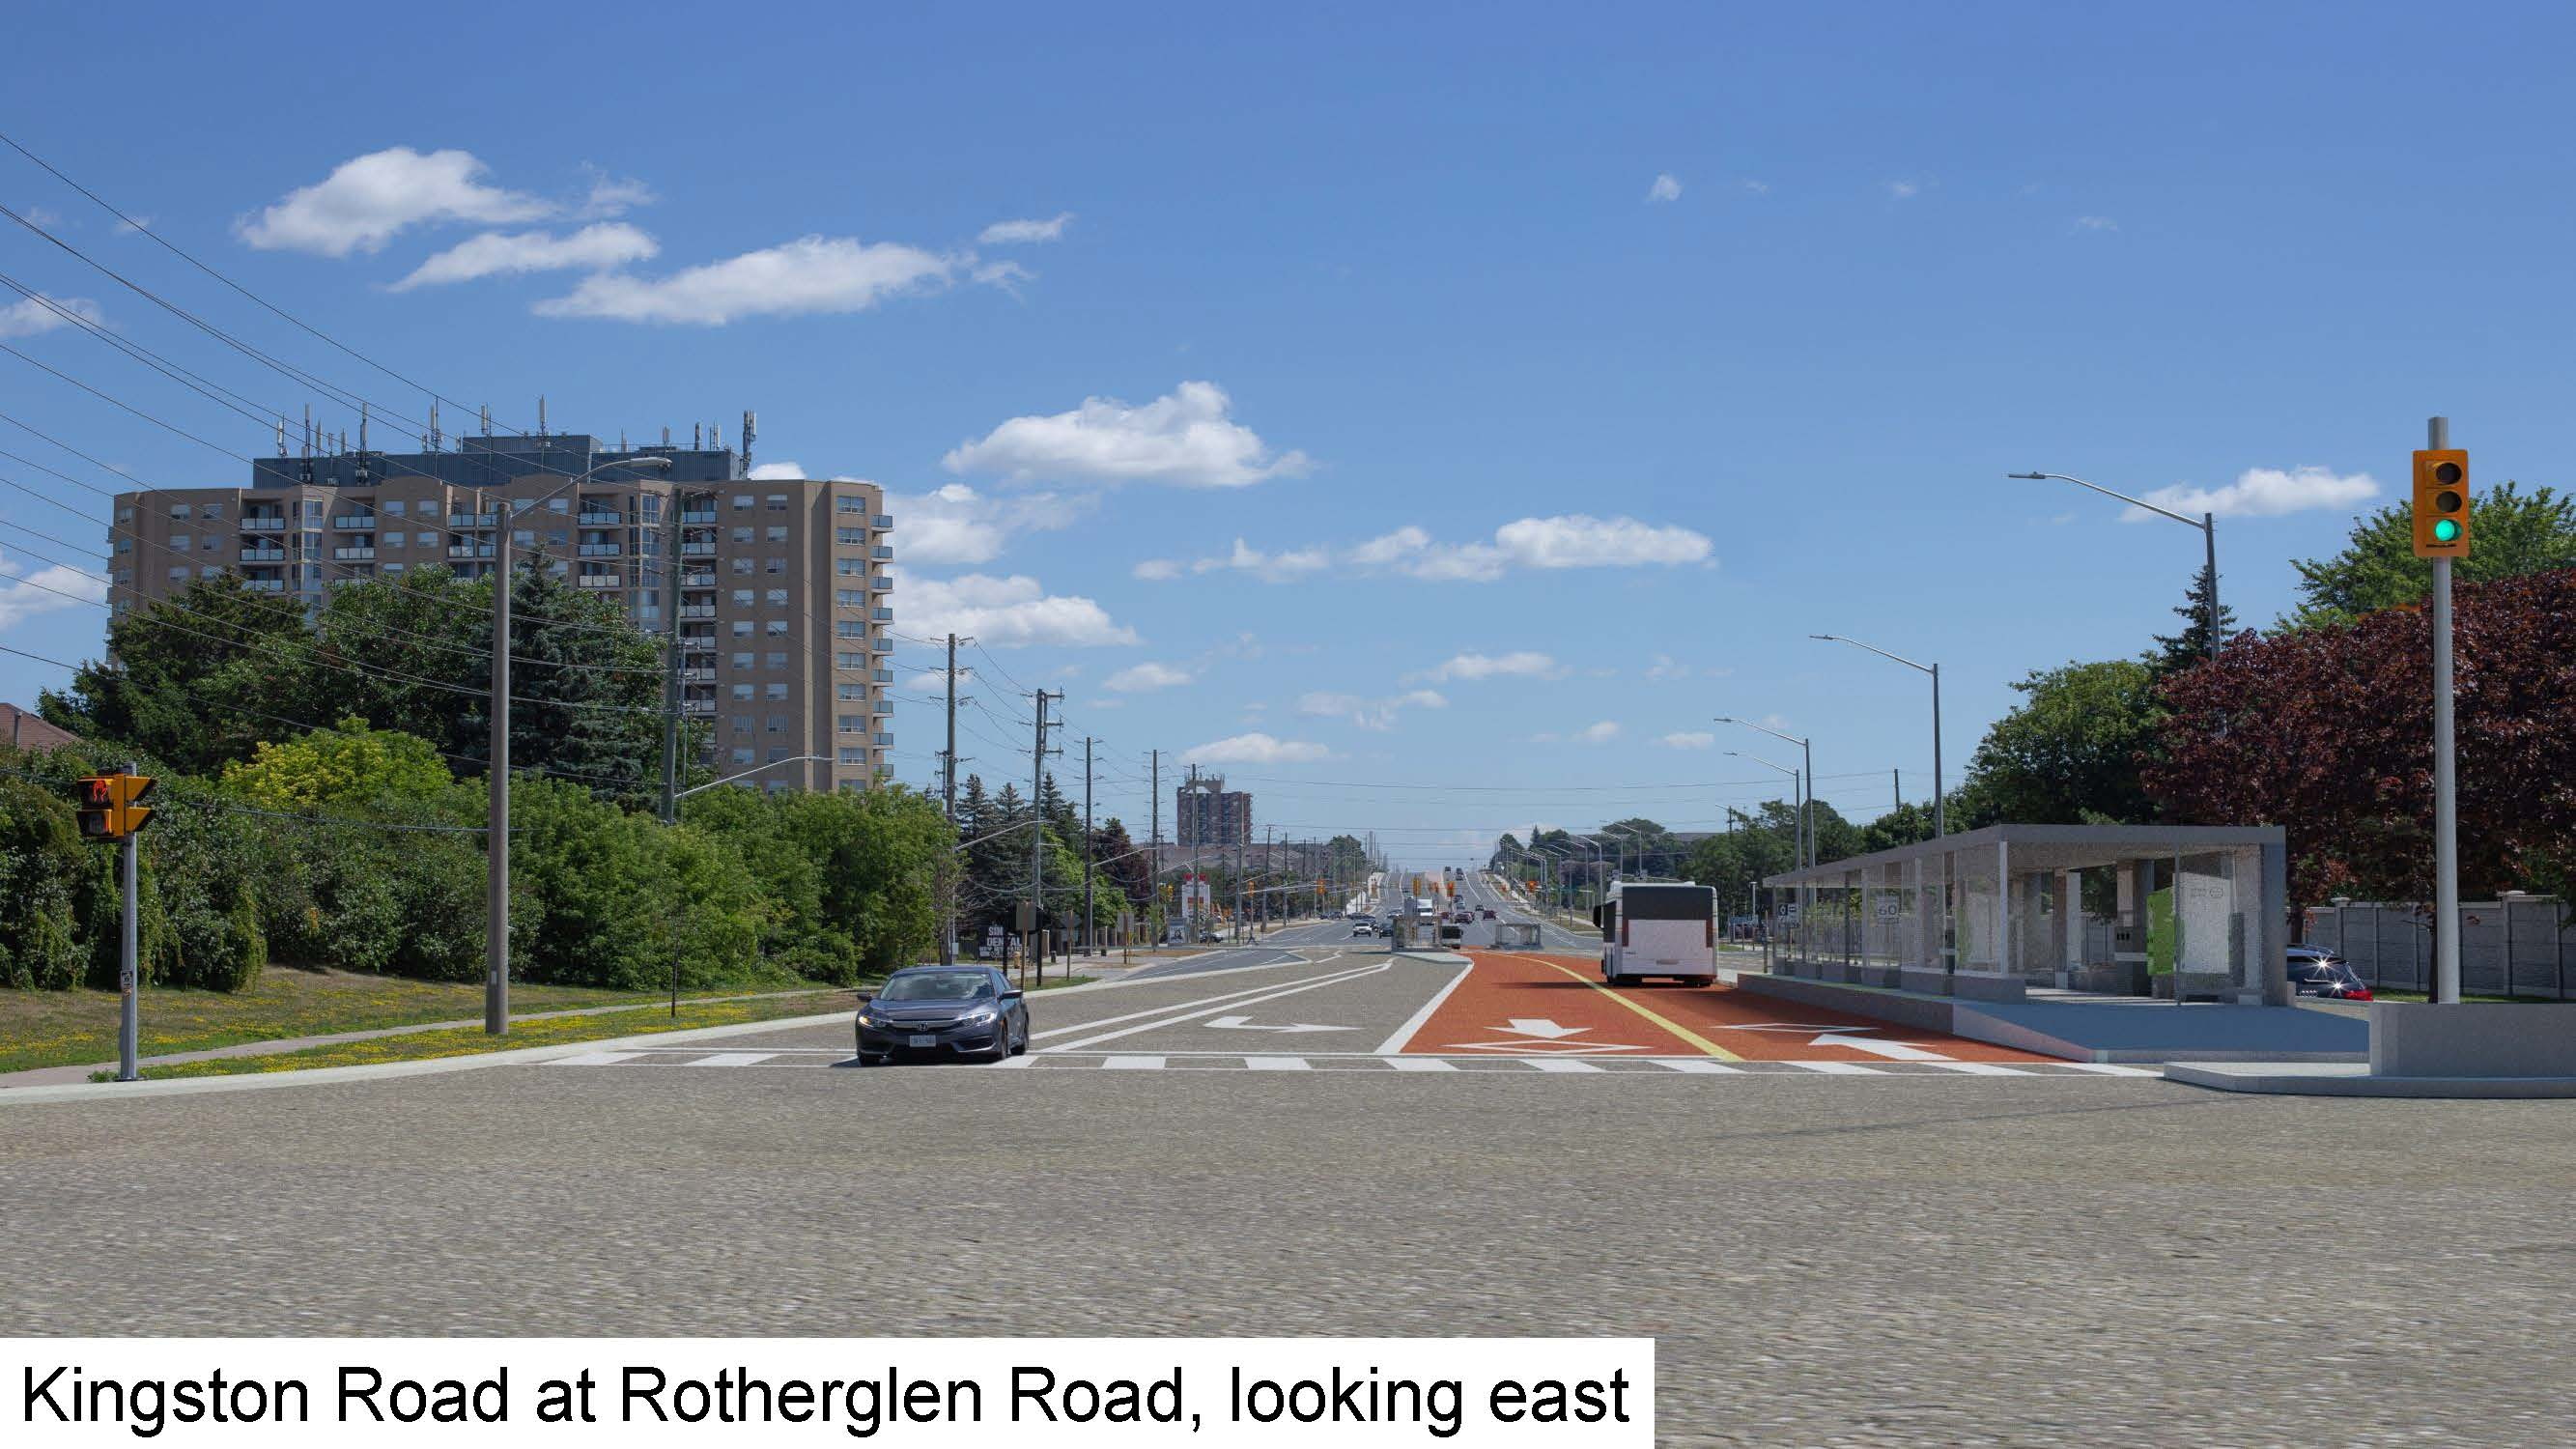 Rendering of Kingston Road at Rotherglen Road, looking east